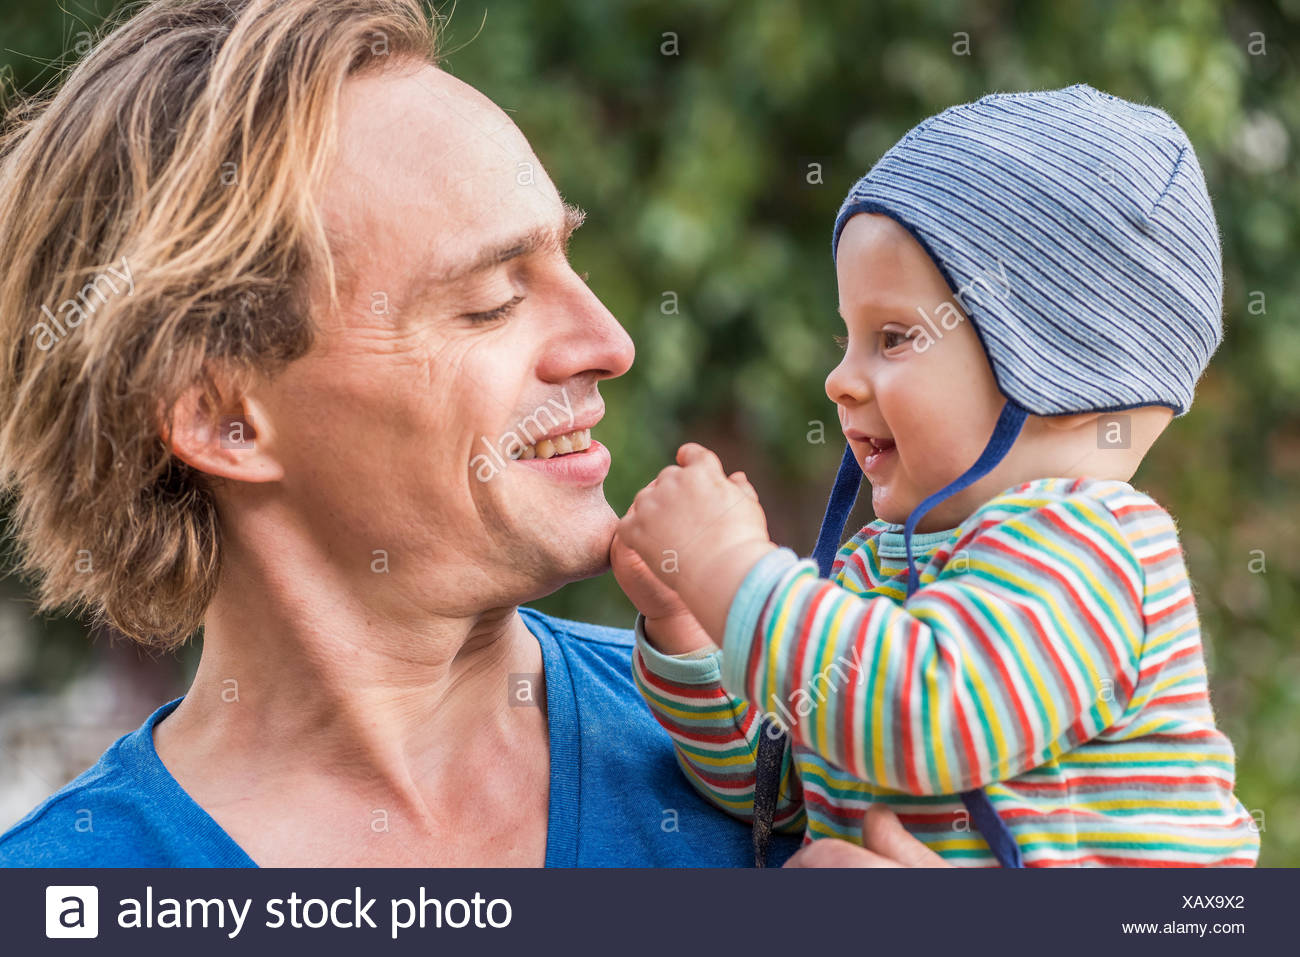 Man watching his little son - Stock Image